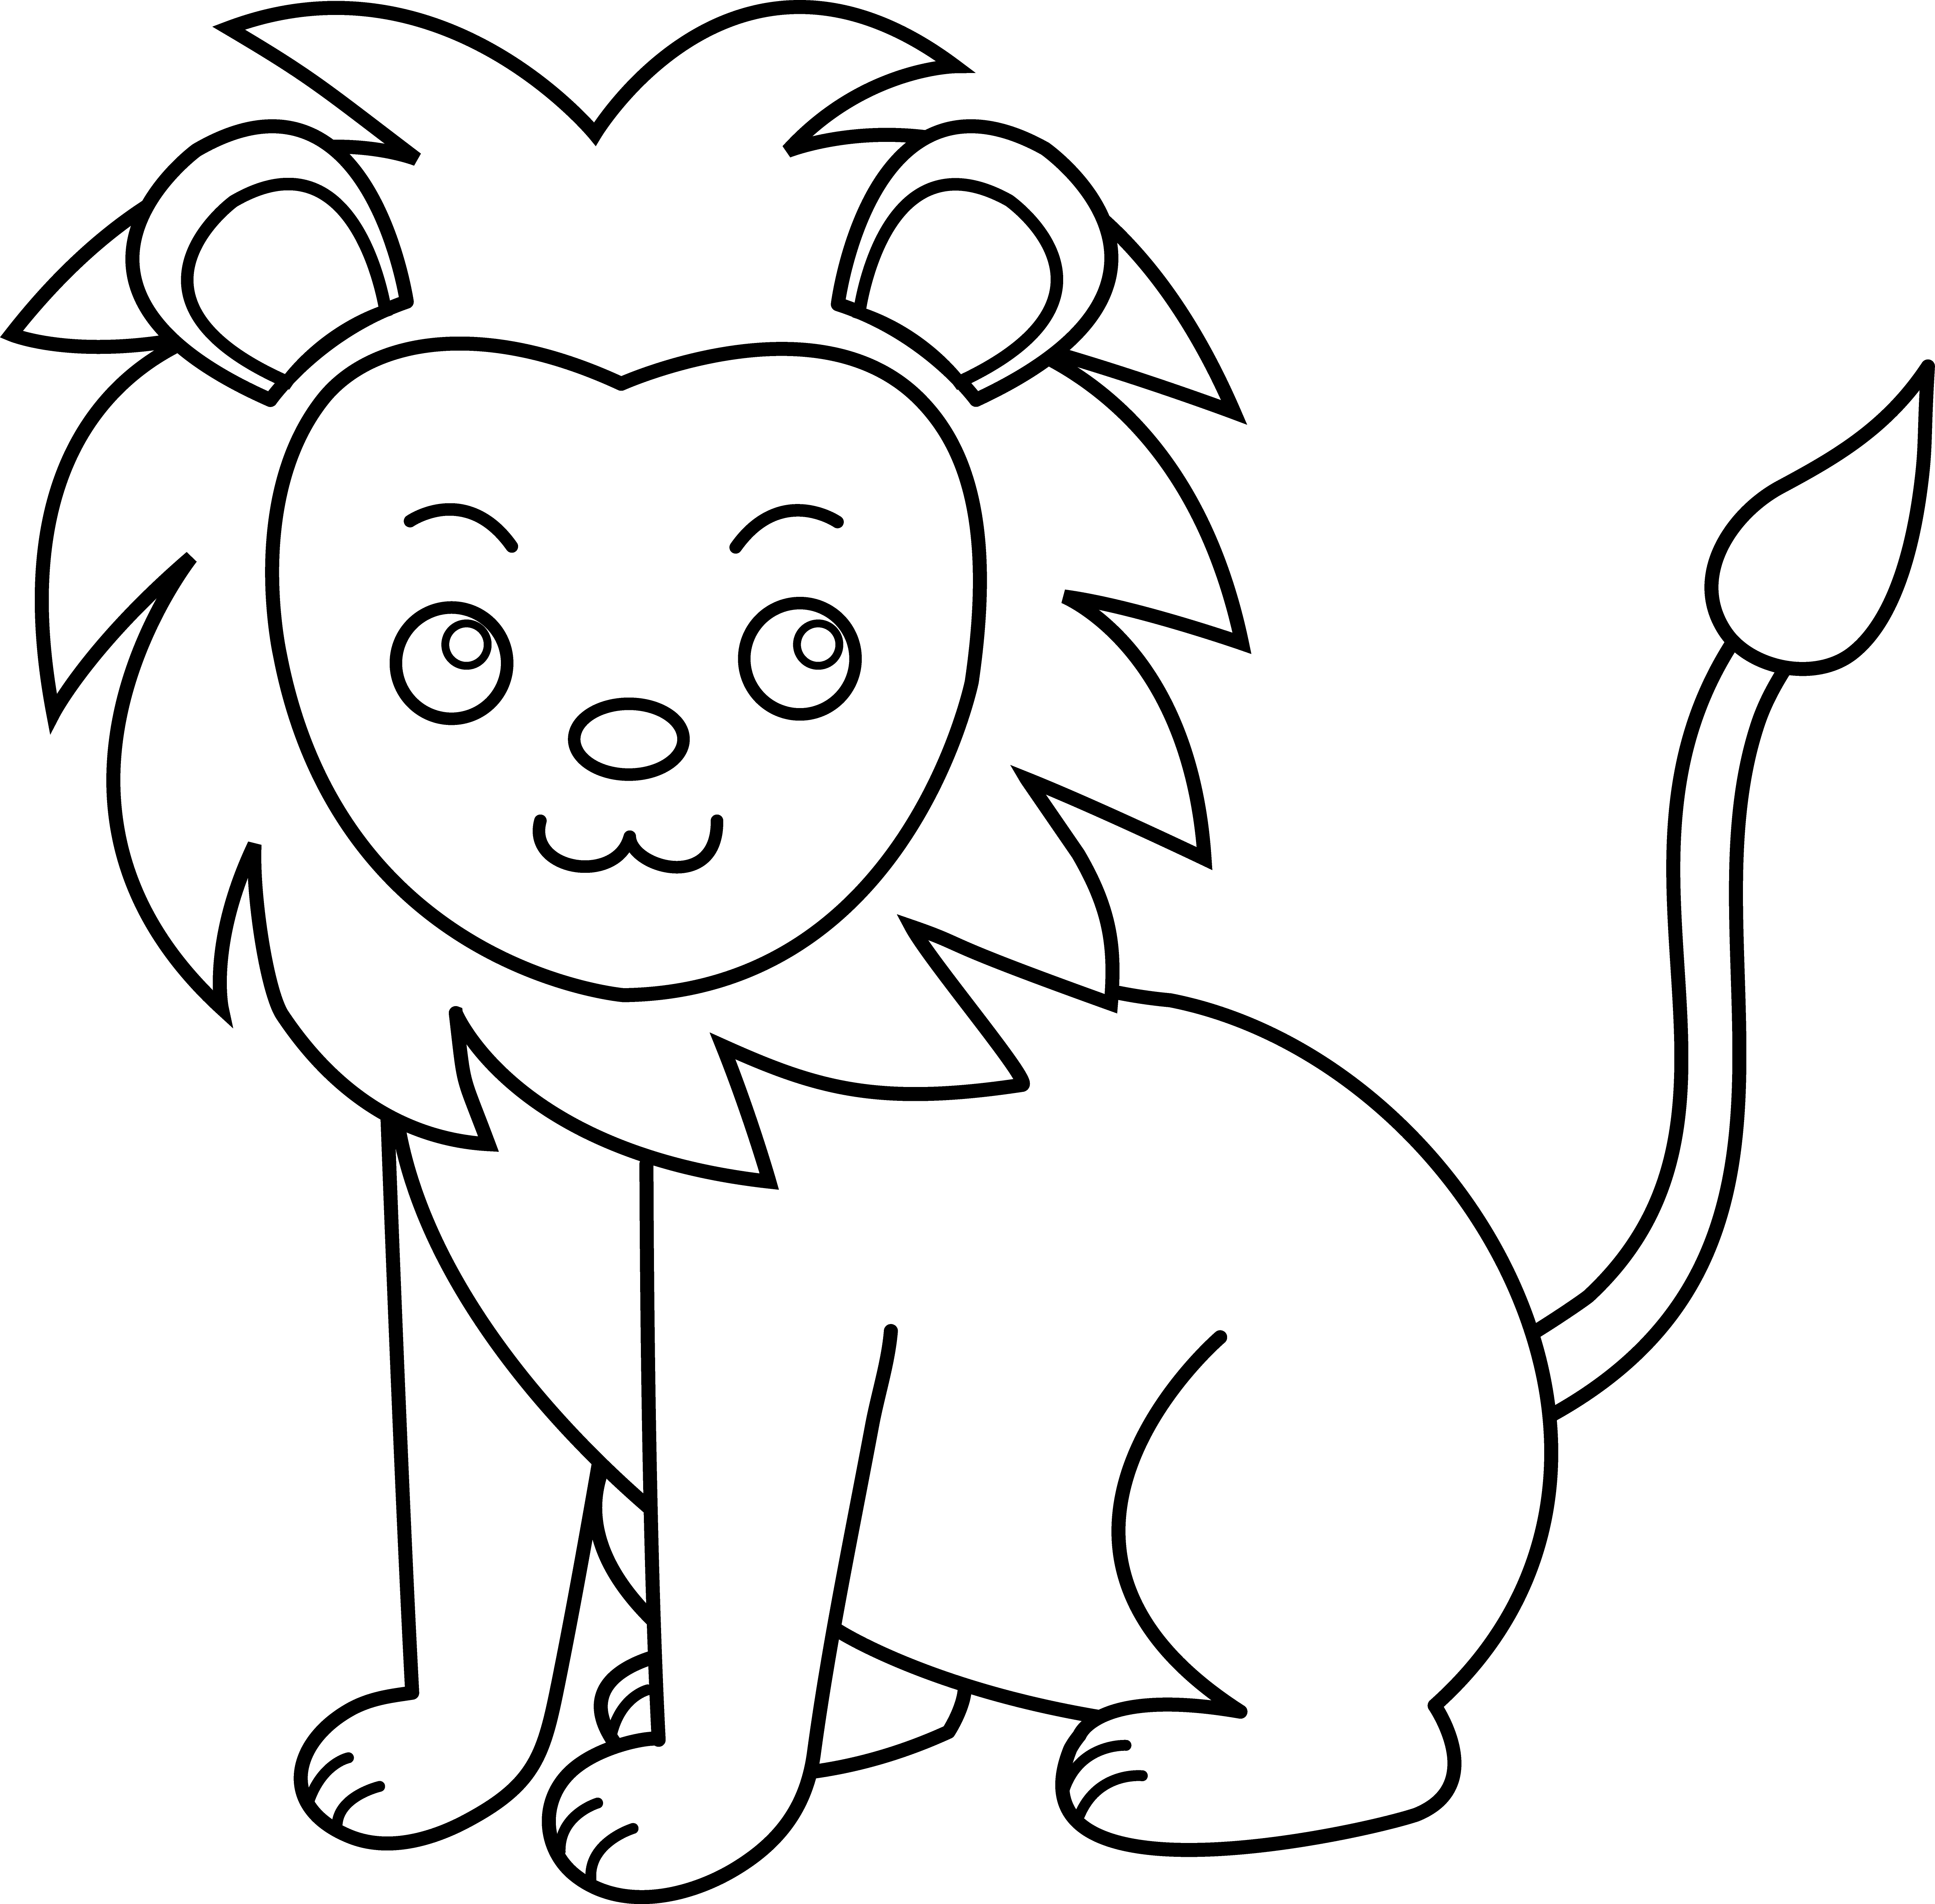 Cute apple clipart black and white svg library stock Free Lion Line Art, Download Free Clip Art, Free Clip Art on Clipart ... svg library stock